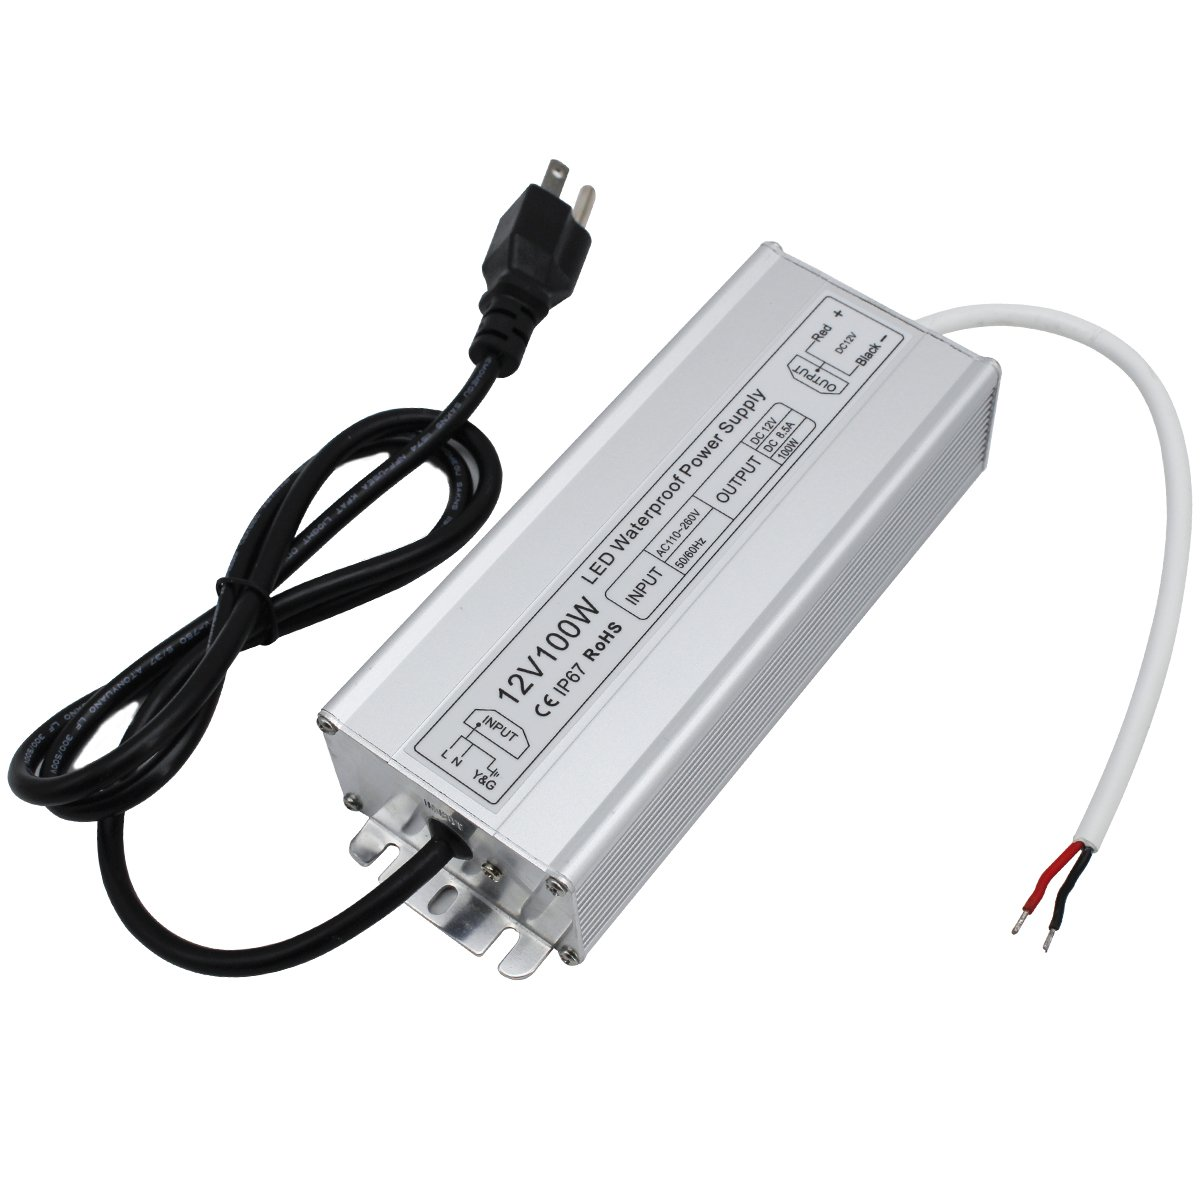 YGS-Tech 12V LED Power Supply 100W, Waterproof Low Voltage Transformer, 12 Volt DC Output with 3-Prong Plug, 5ft Cable